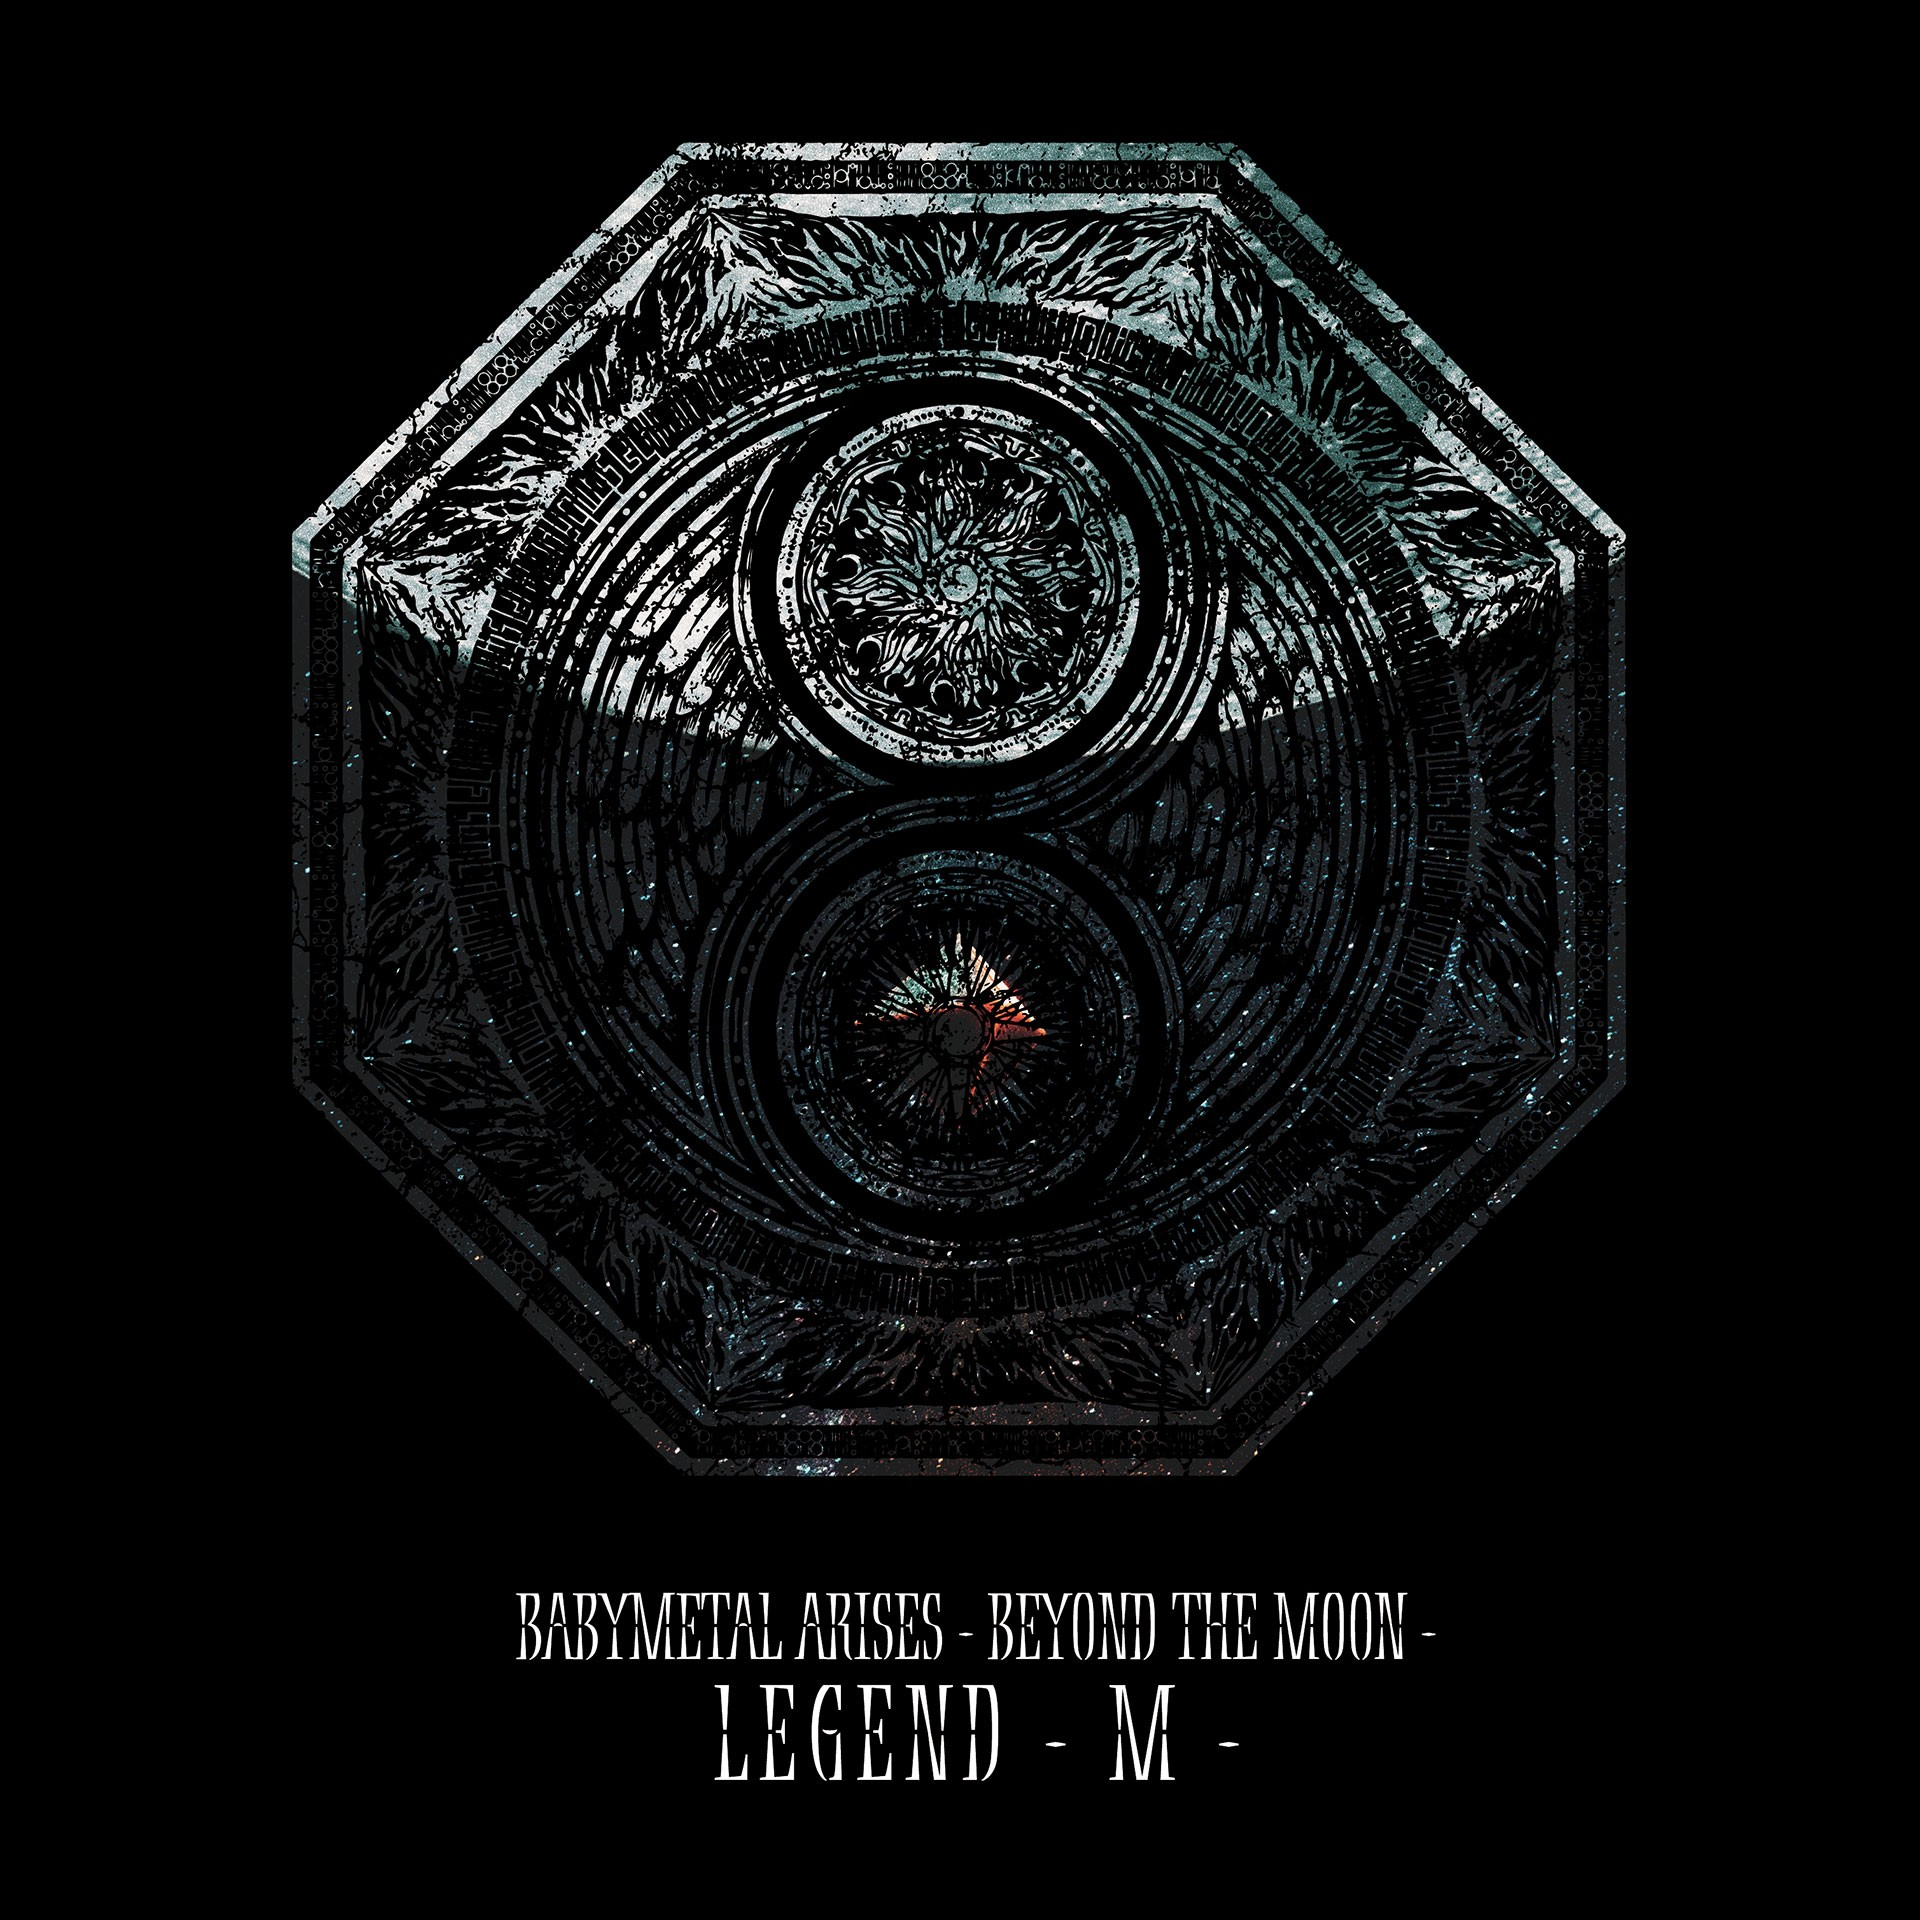 BABYMETAL – BABYMETAL ARISES – BEYOND THE MOON – LEGEND – M – (2020) [CD FLAC + Blu-ray ISO]